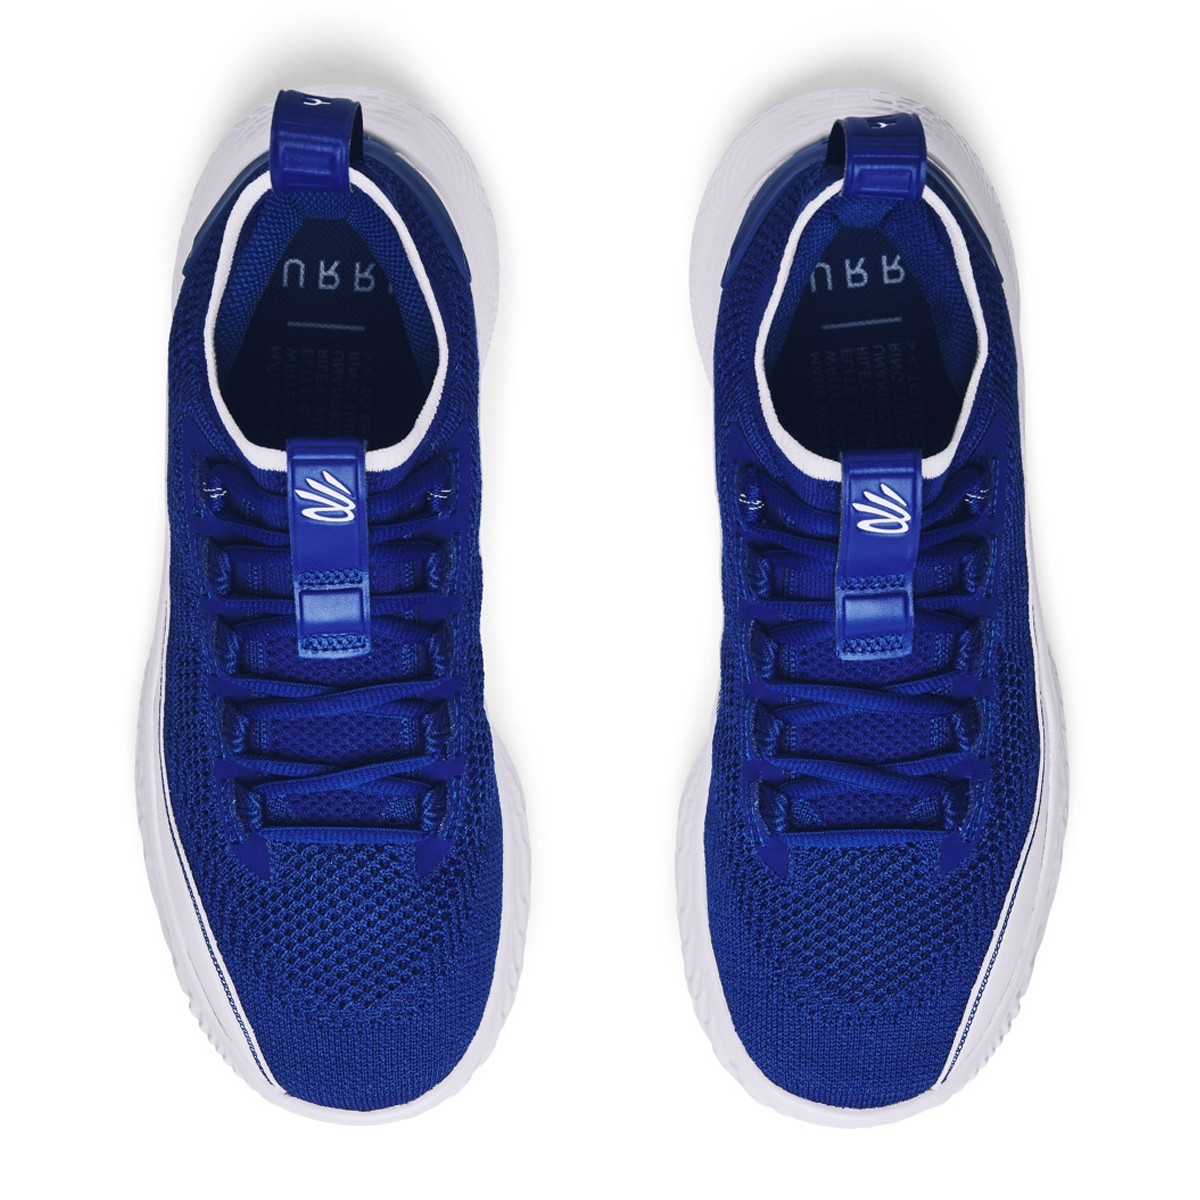 Under Armour Curry 8 PS 'Dub Nation'-3023528-402